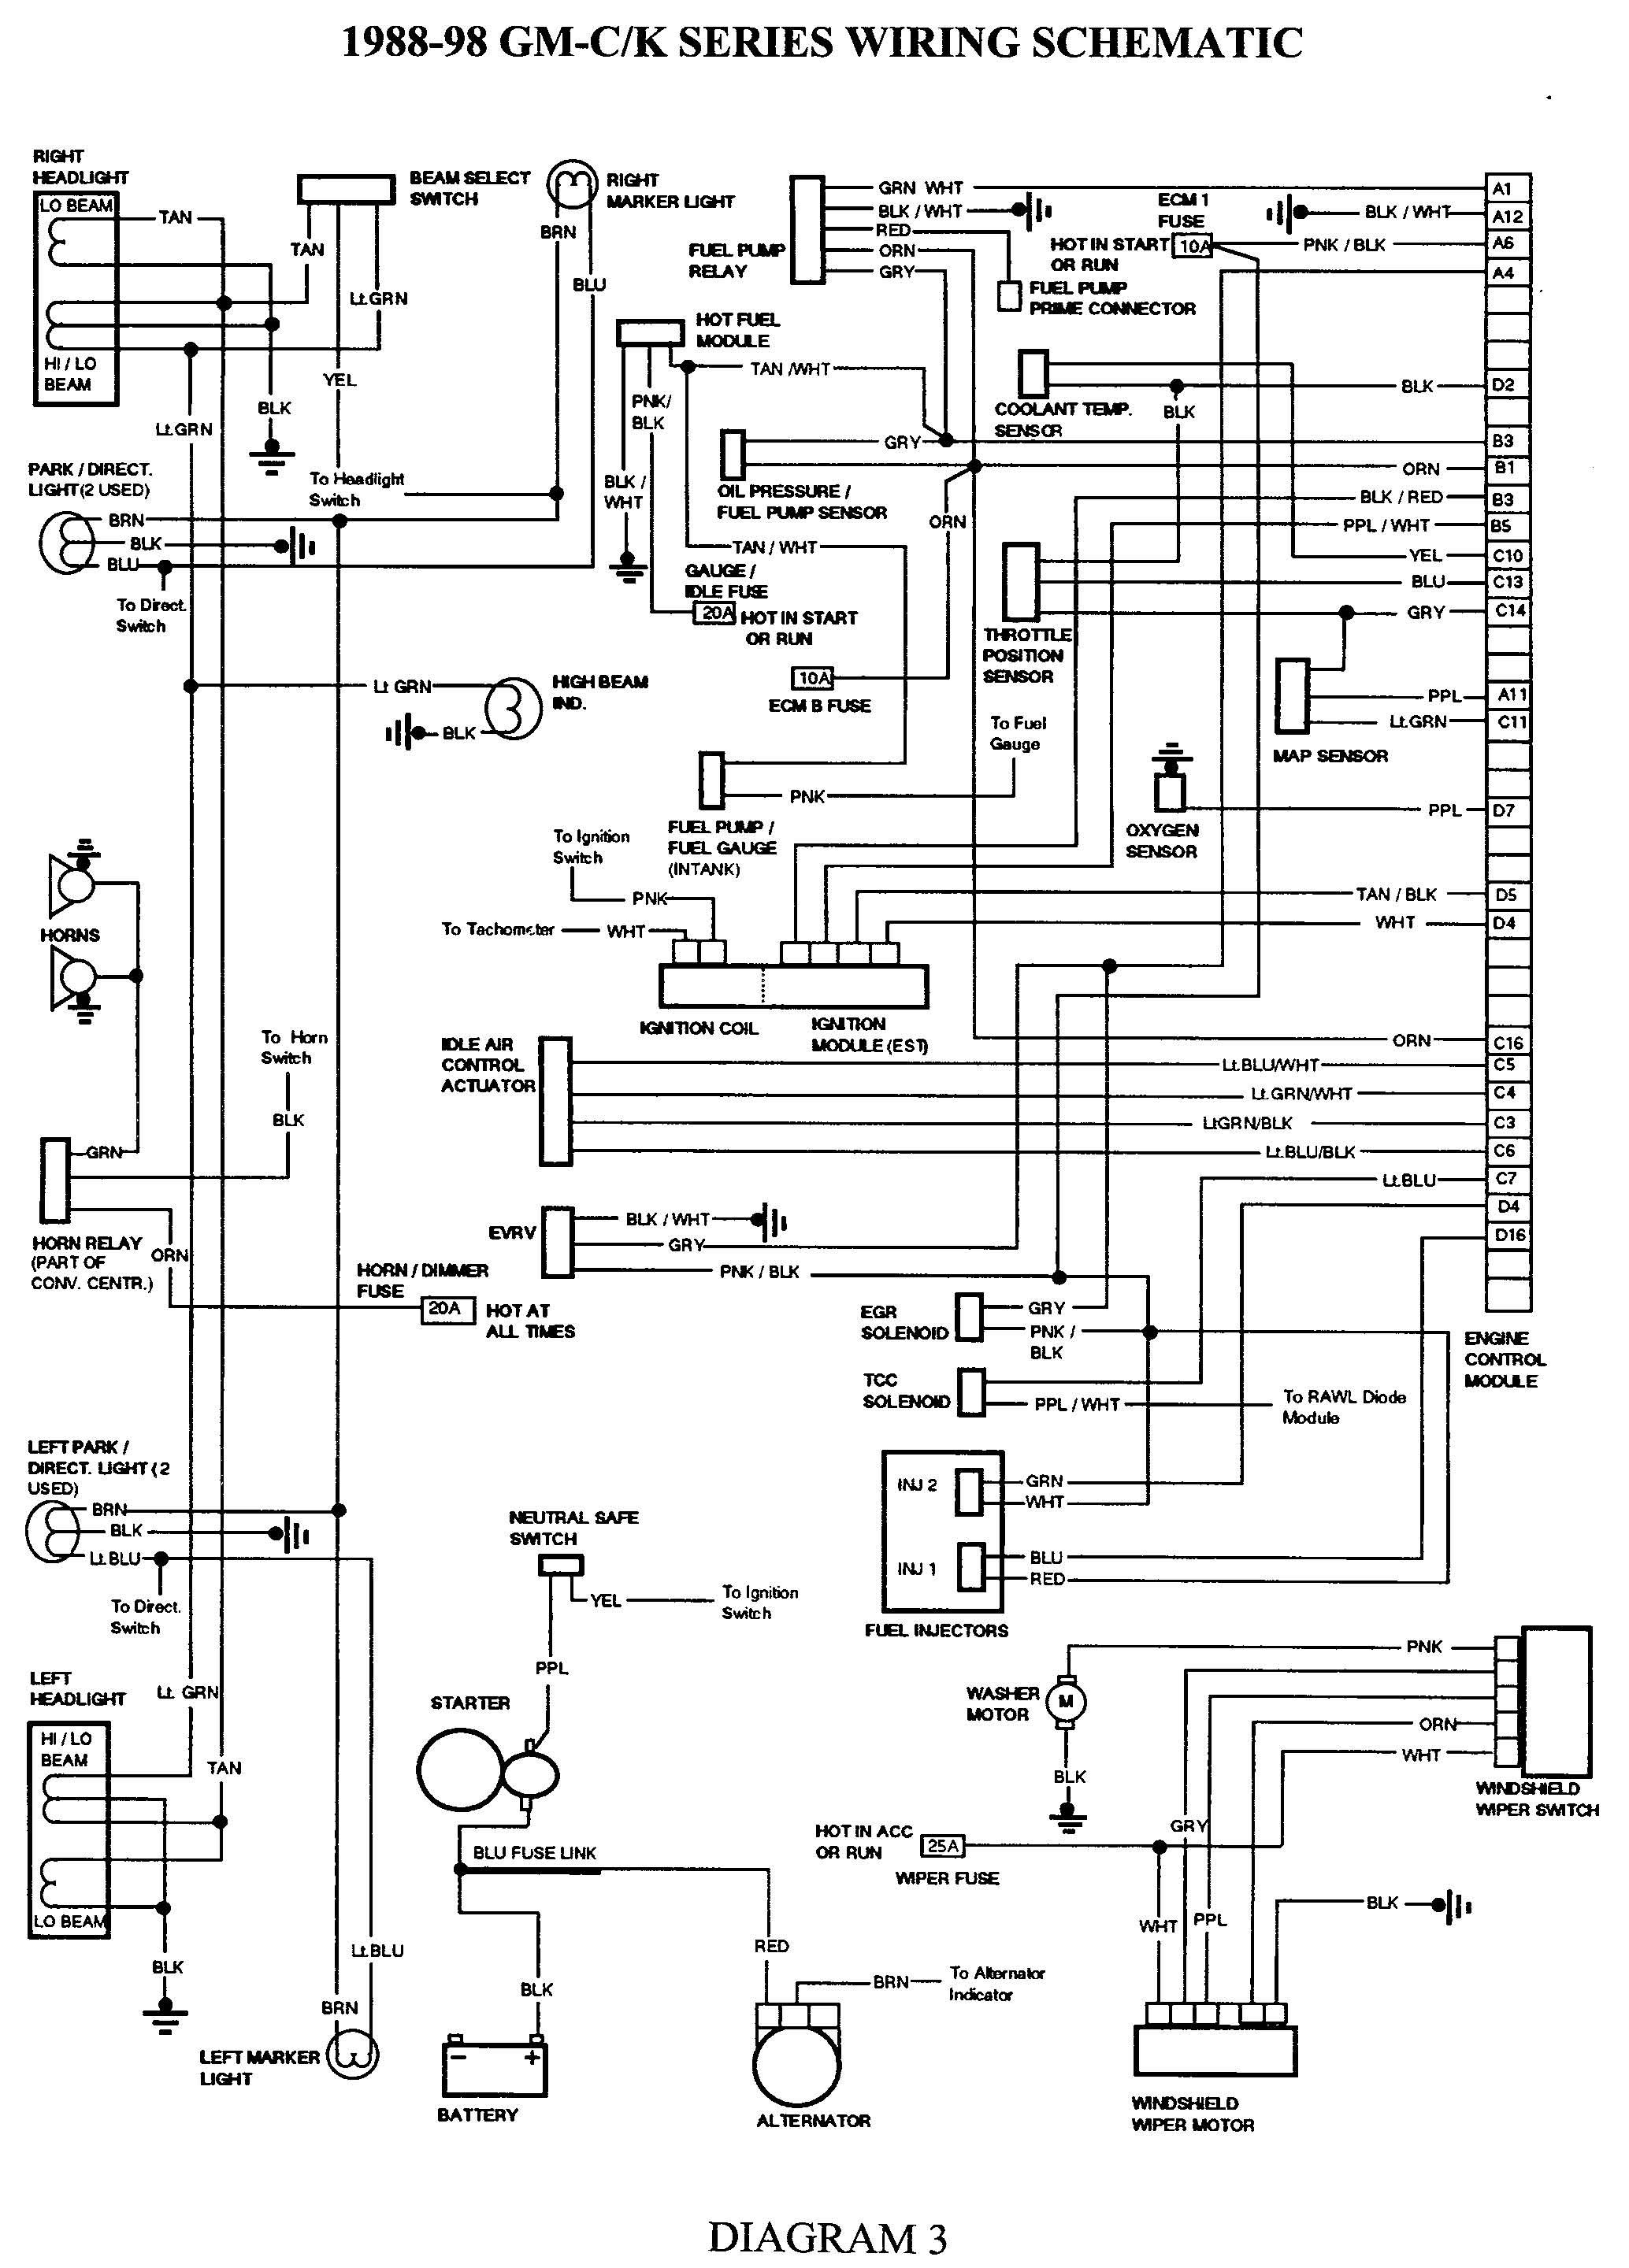 b2f2e5dbdc07dada83ef514f6d4ce3d4 gmc truck wiring diagrams on gm wiring harness diagram 88 98 kc gmc truck wiring harness at fashall.co